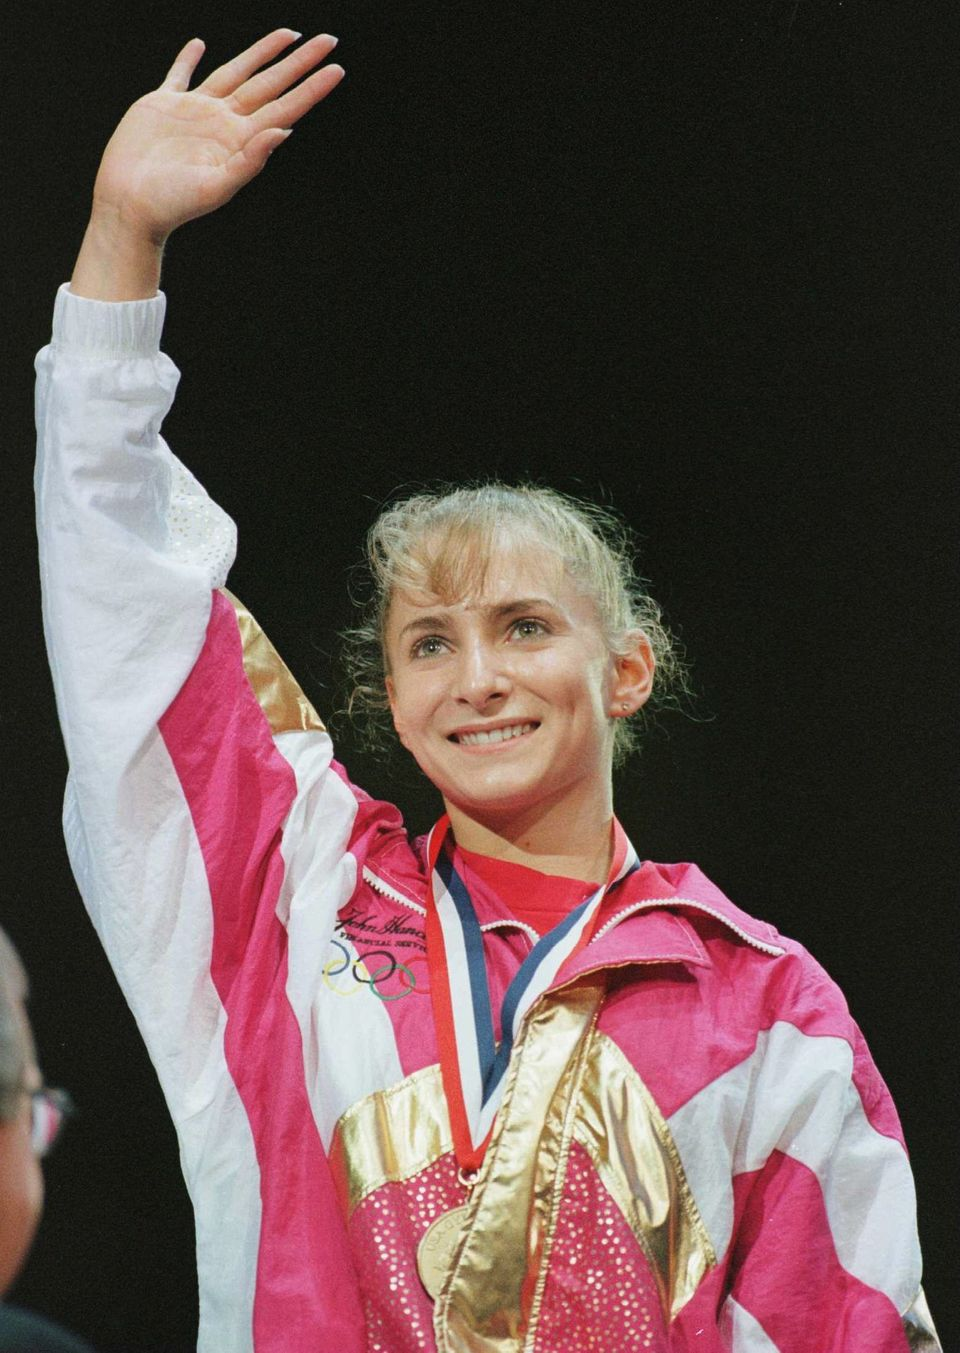 7 Jun 1996:  Shannon Miller waves from the podium after receiving the gold medal in the All-Around competition at the USA Gym